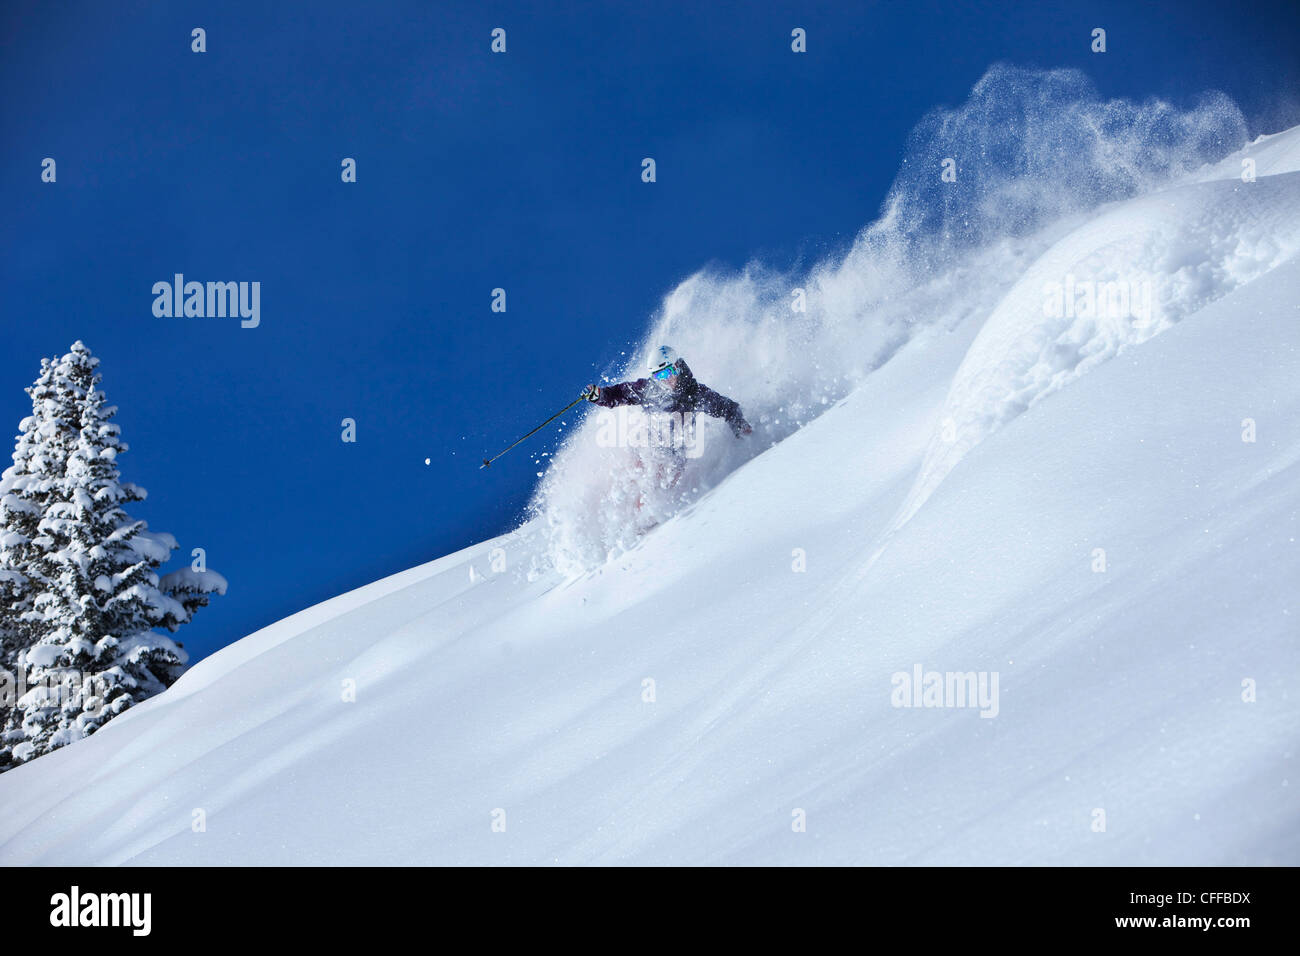 A athletic skier rips fresh deep powder turns in the backcountry on a sunny day in Colorado. Stock Photo